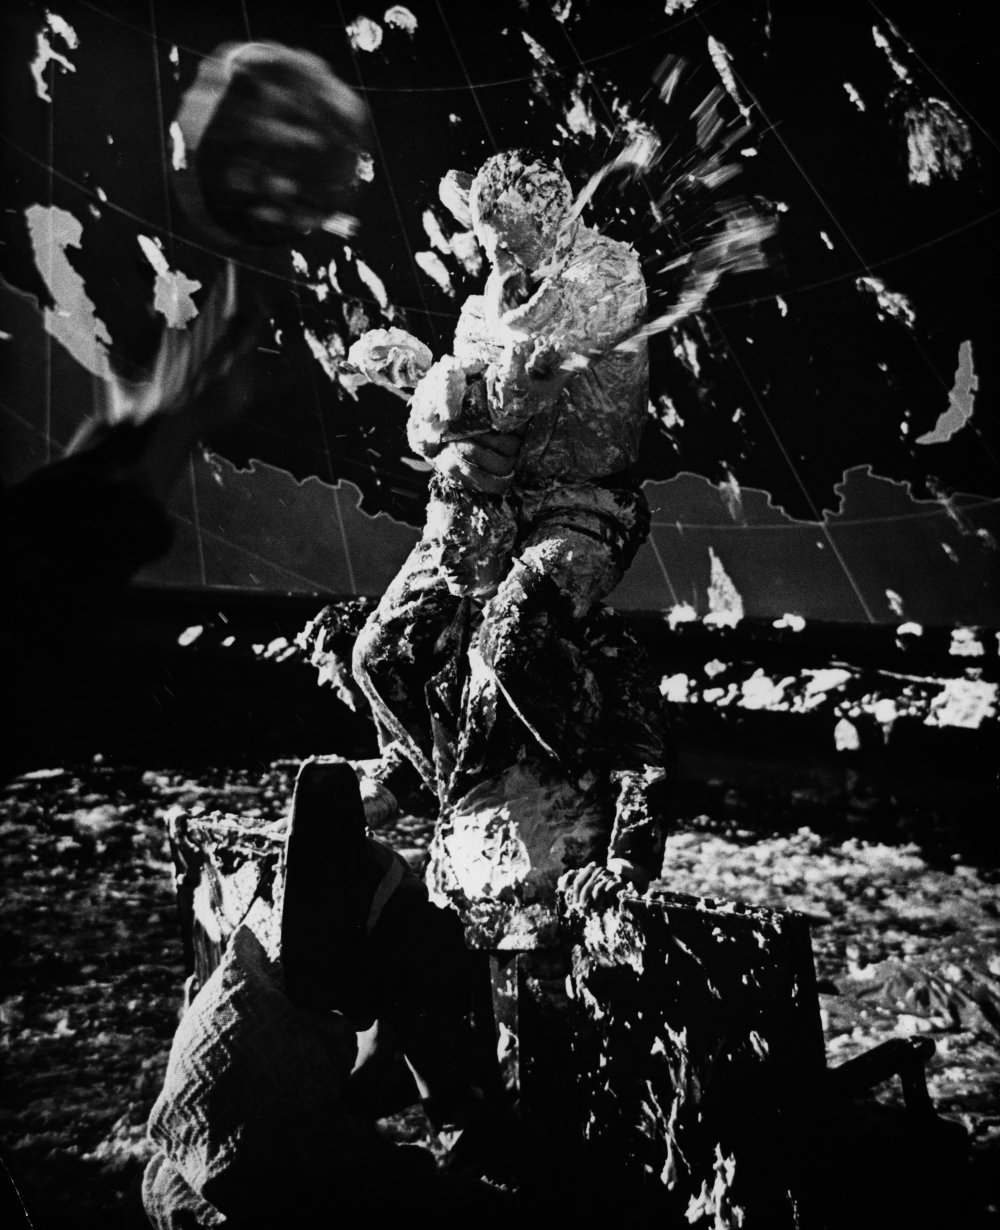 dr-strangelove-1963-023-custard-pie-fight-00n-6w8.jpg